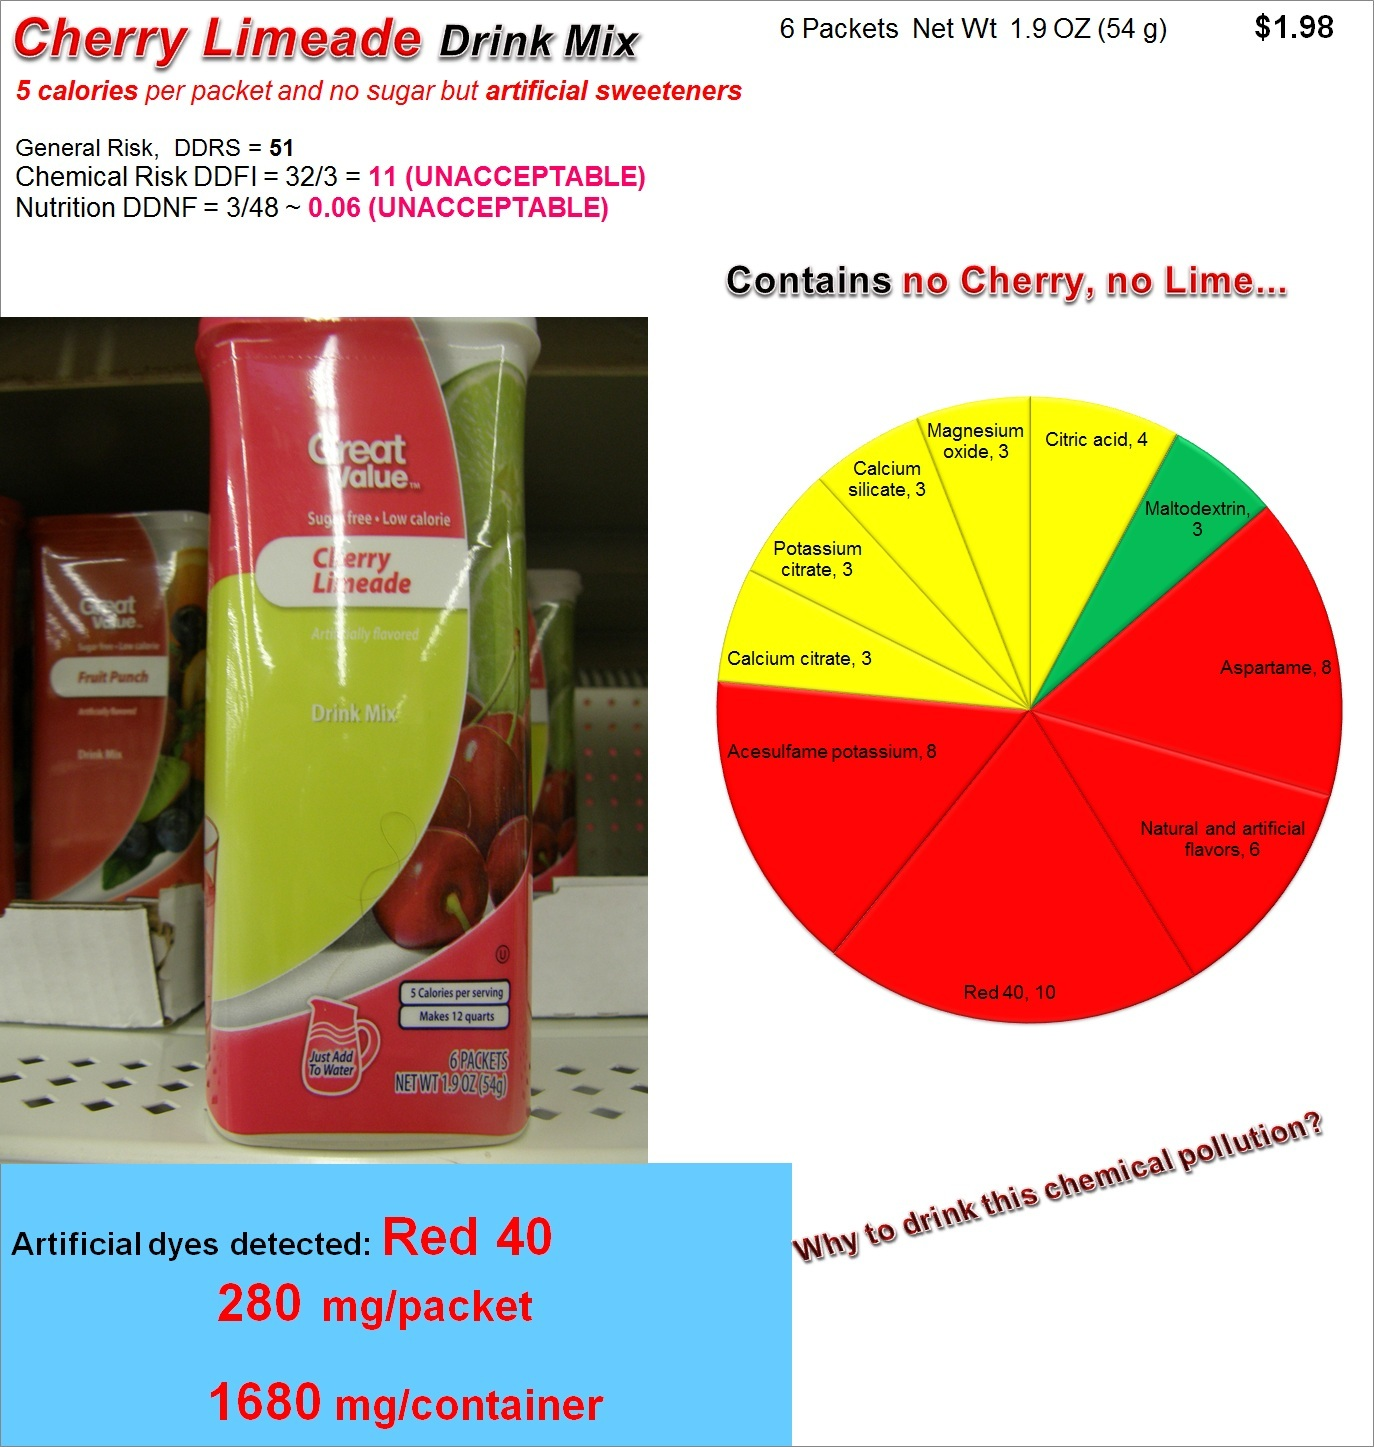 Great Value Cherry Limeade Drink Mix: Risk, Nutrition and Dye Content